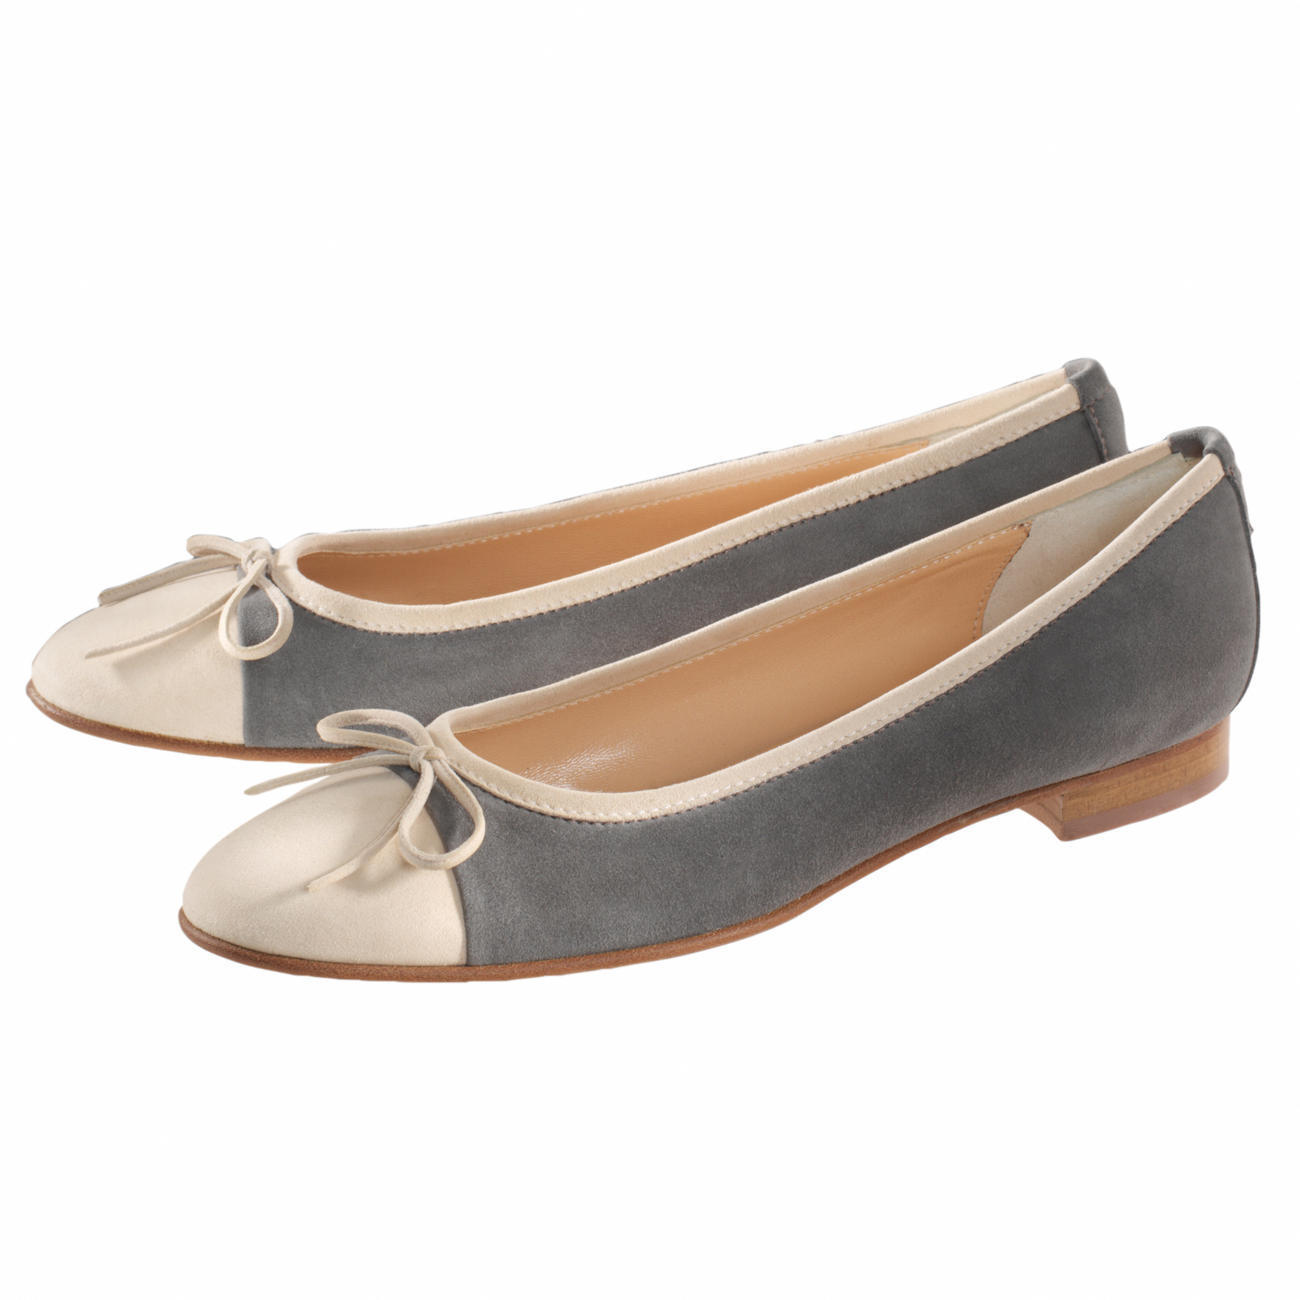 Women's Ballerina Shoes. Clothing. Shoes. Womens Shoes. Women's Ballerina Shoes. Showing 48 of results that match your query. Search Product Result. Product - Meigar Women Casual Shoes Ladies Flat Pumps Ballerina Ballet Shoes. Reduced Price. .